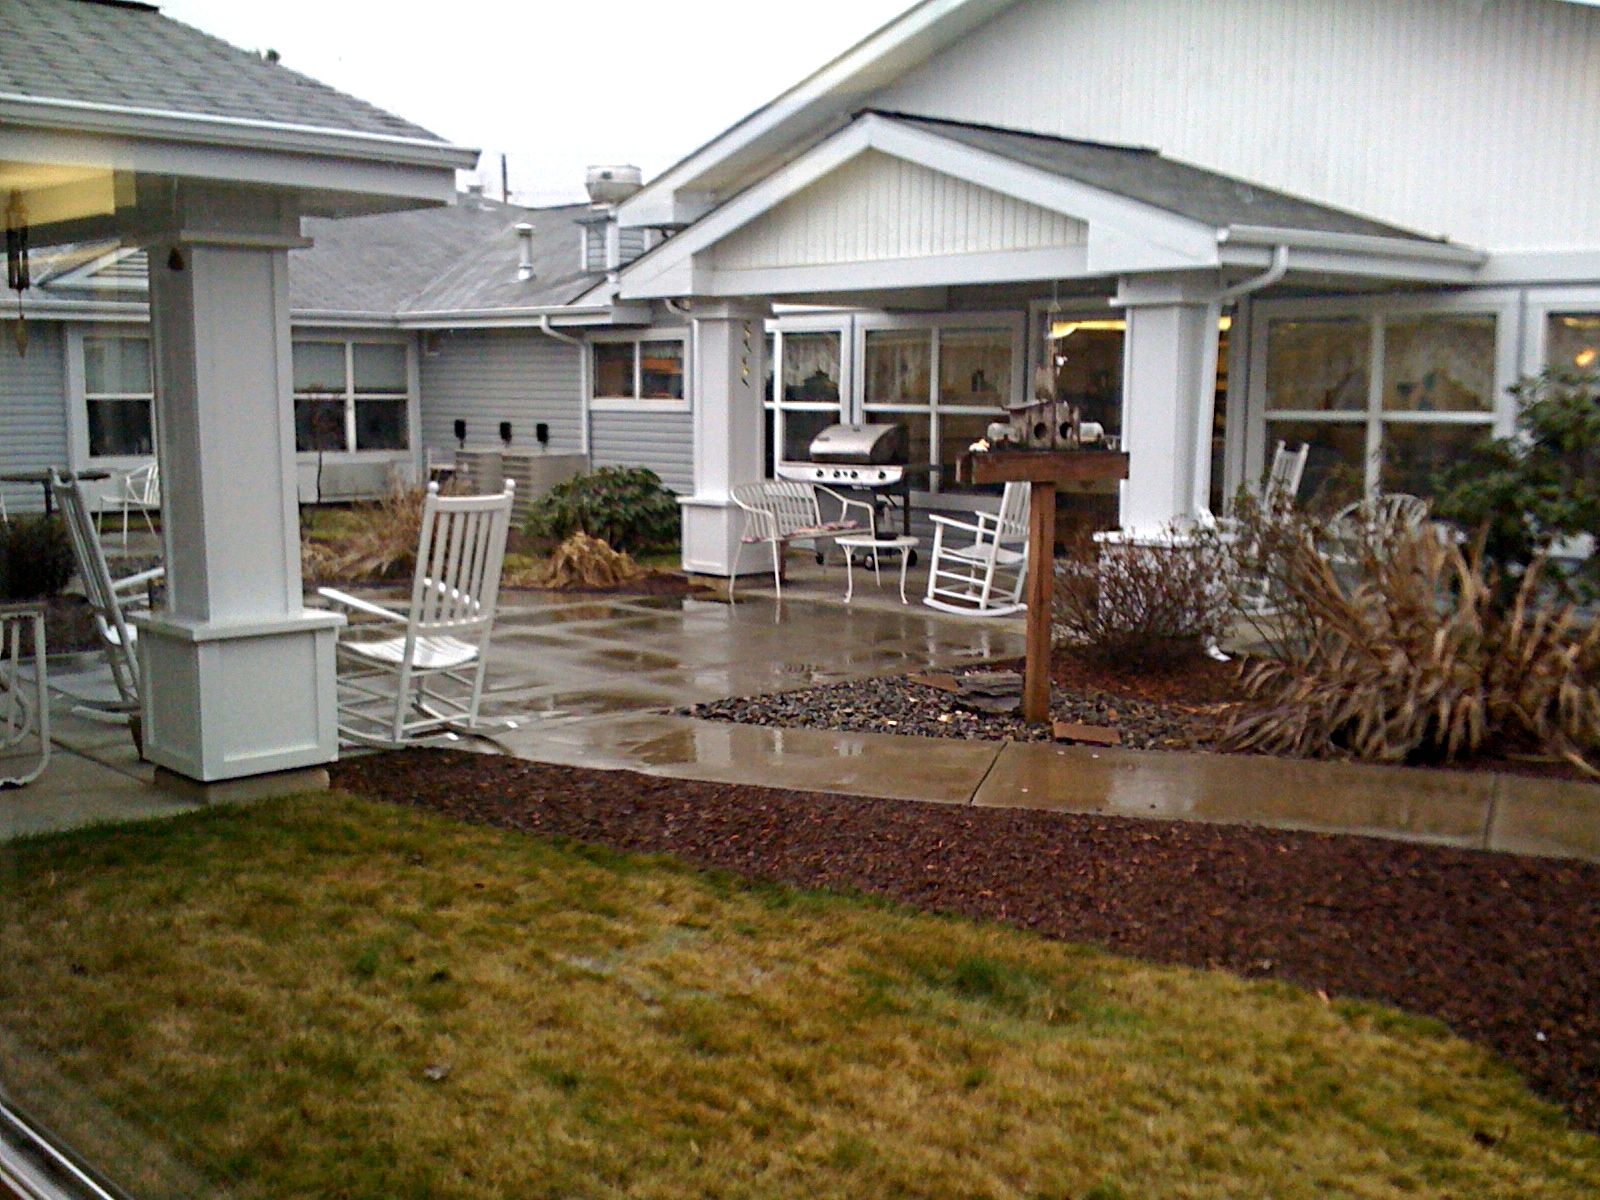 Applegate Place Assisted Living Community image 1